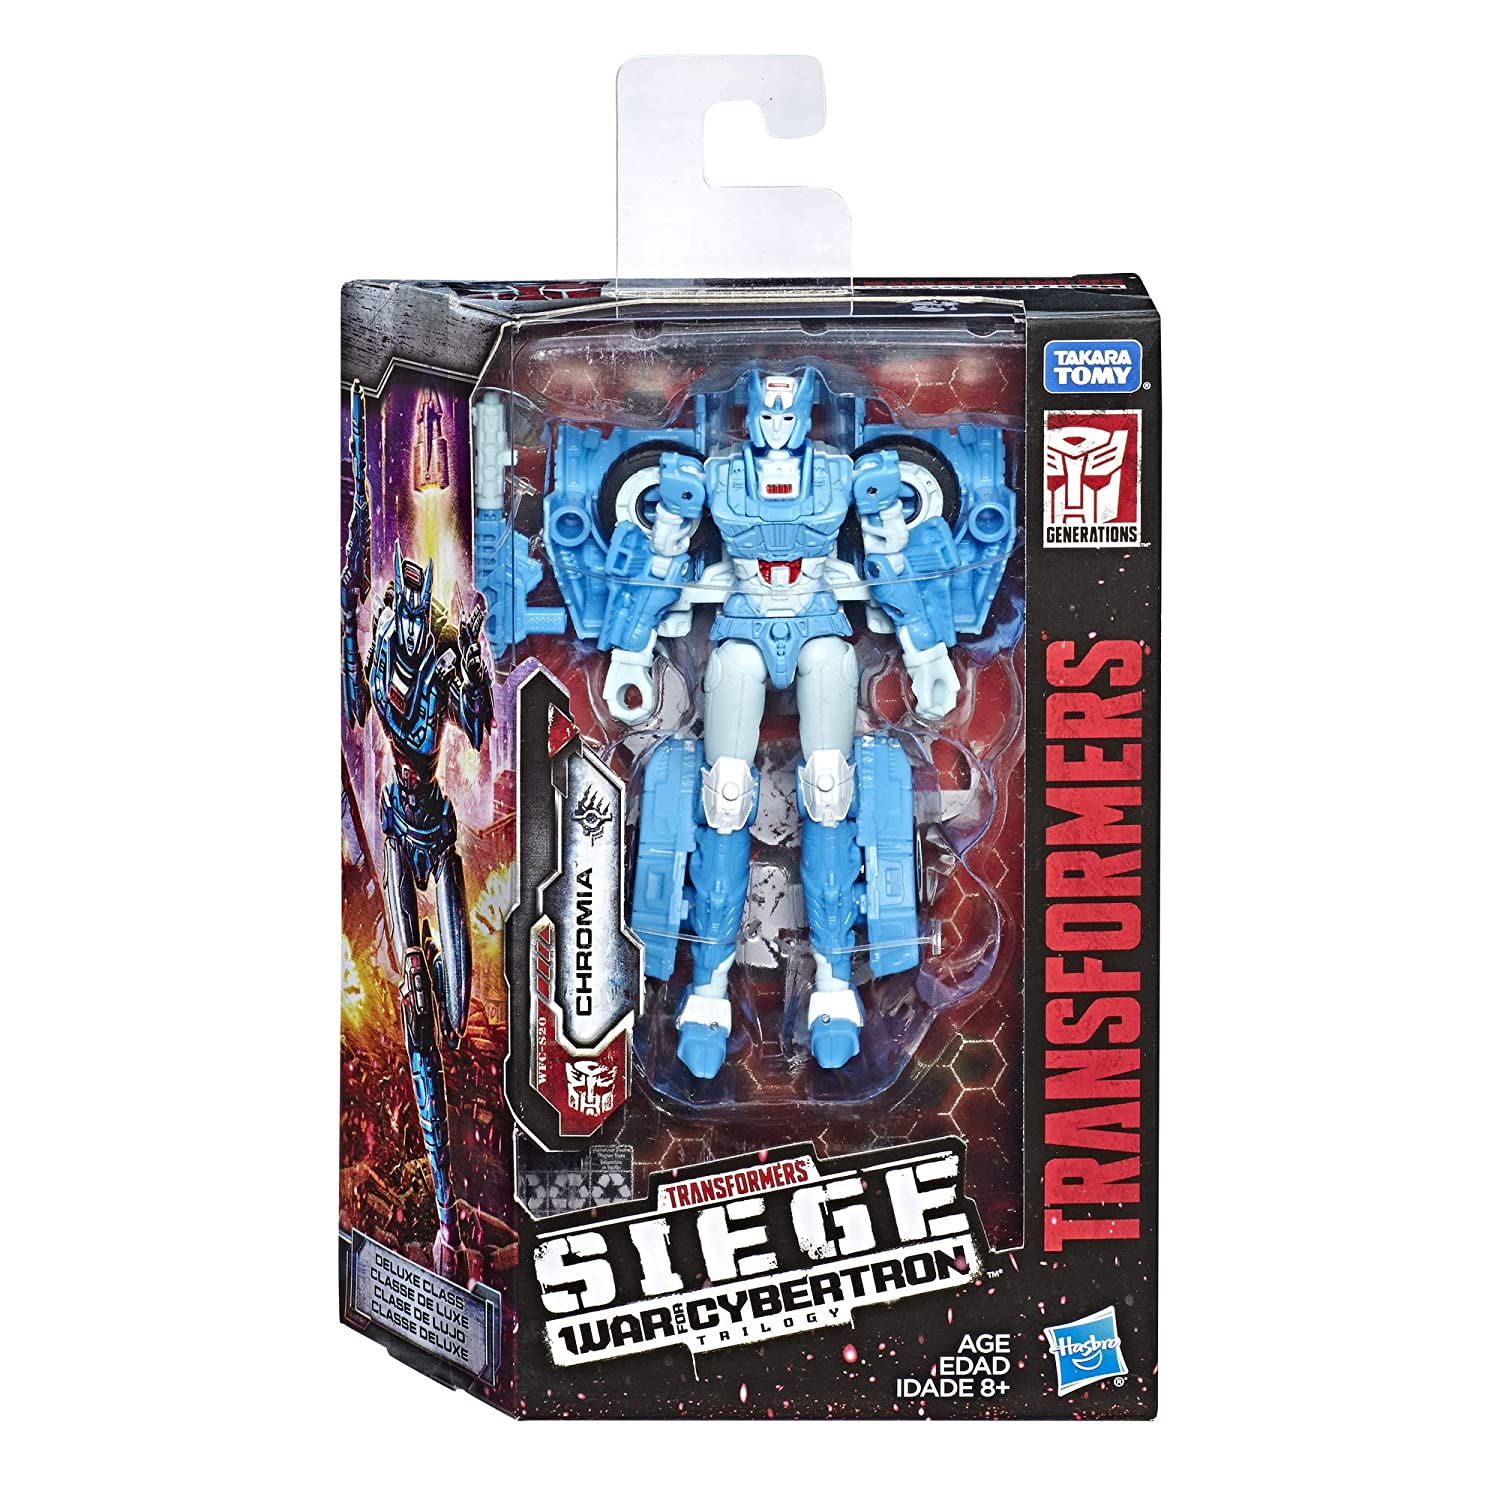 Adults /& Kids Ages 8 /& Up Siege Chapter Transformers Toys Generations War for Cybertron Deluxe Wfc-S20 Chromia Action Figure 5